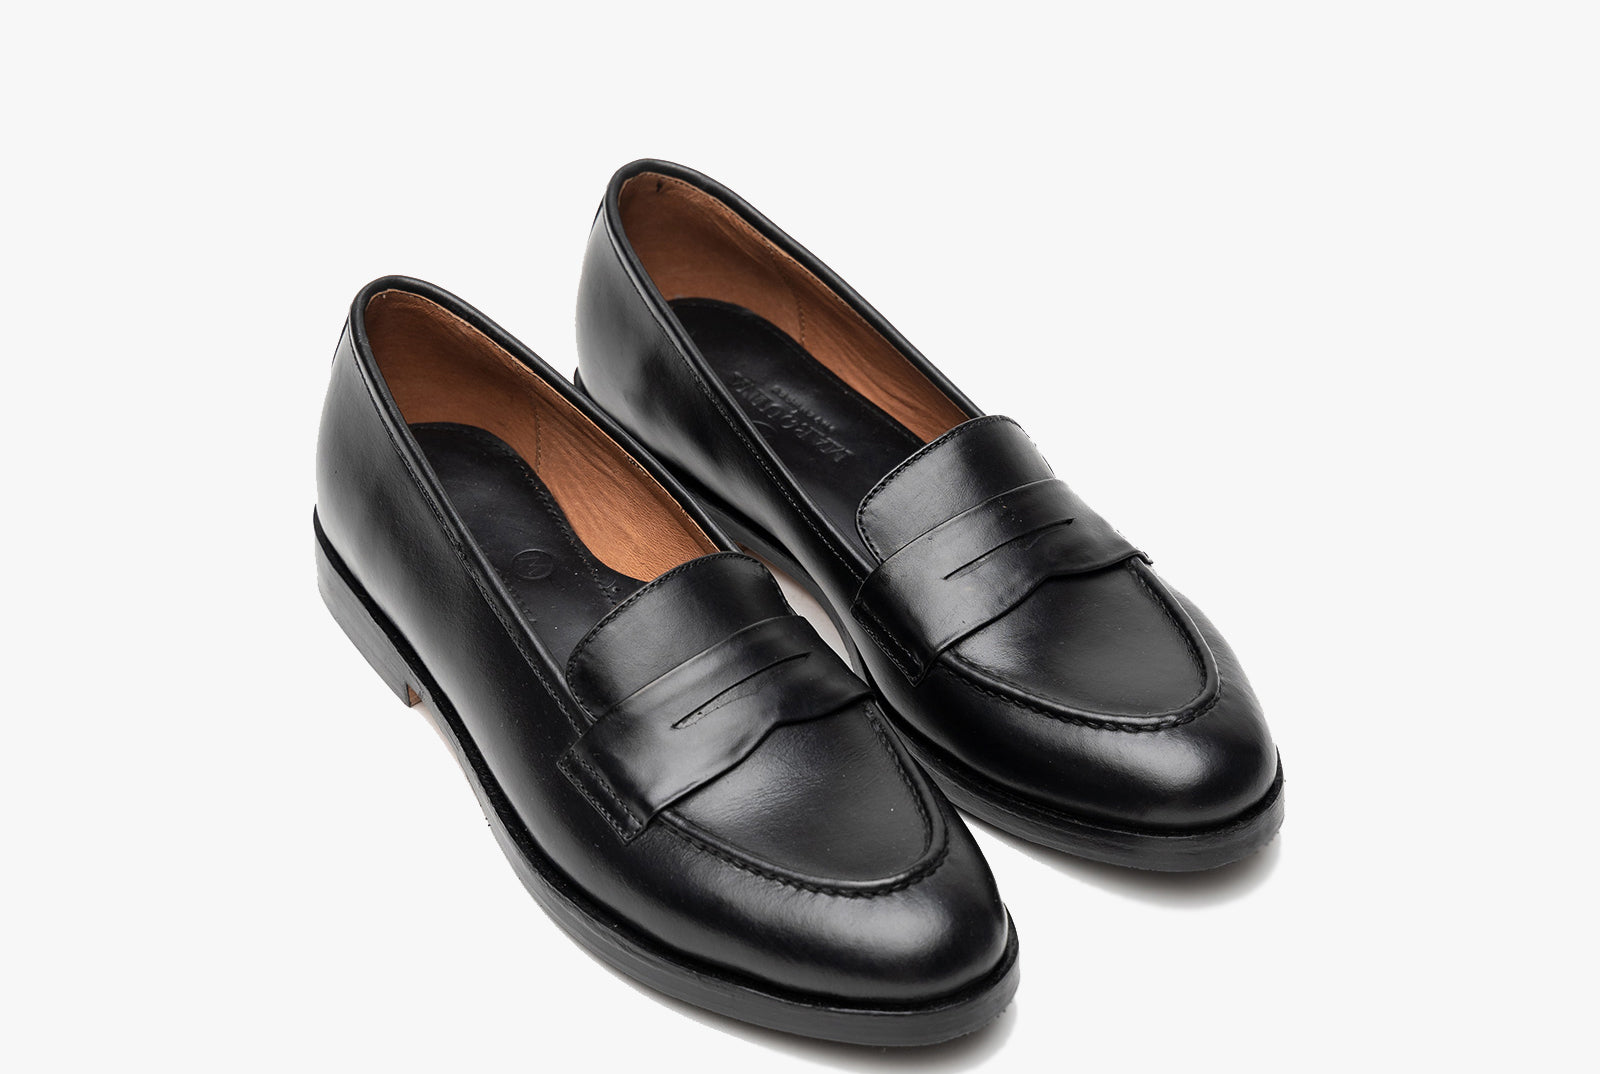 The Bonnie Penny Loafers - Black Noir - Marquina Shoemaker